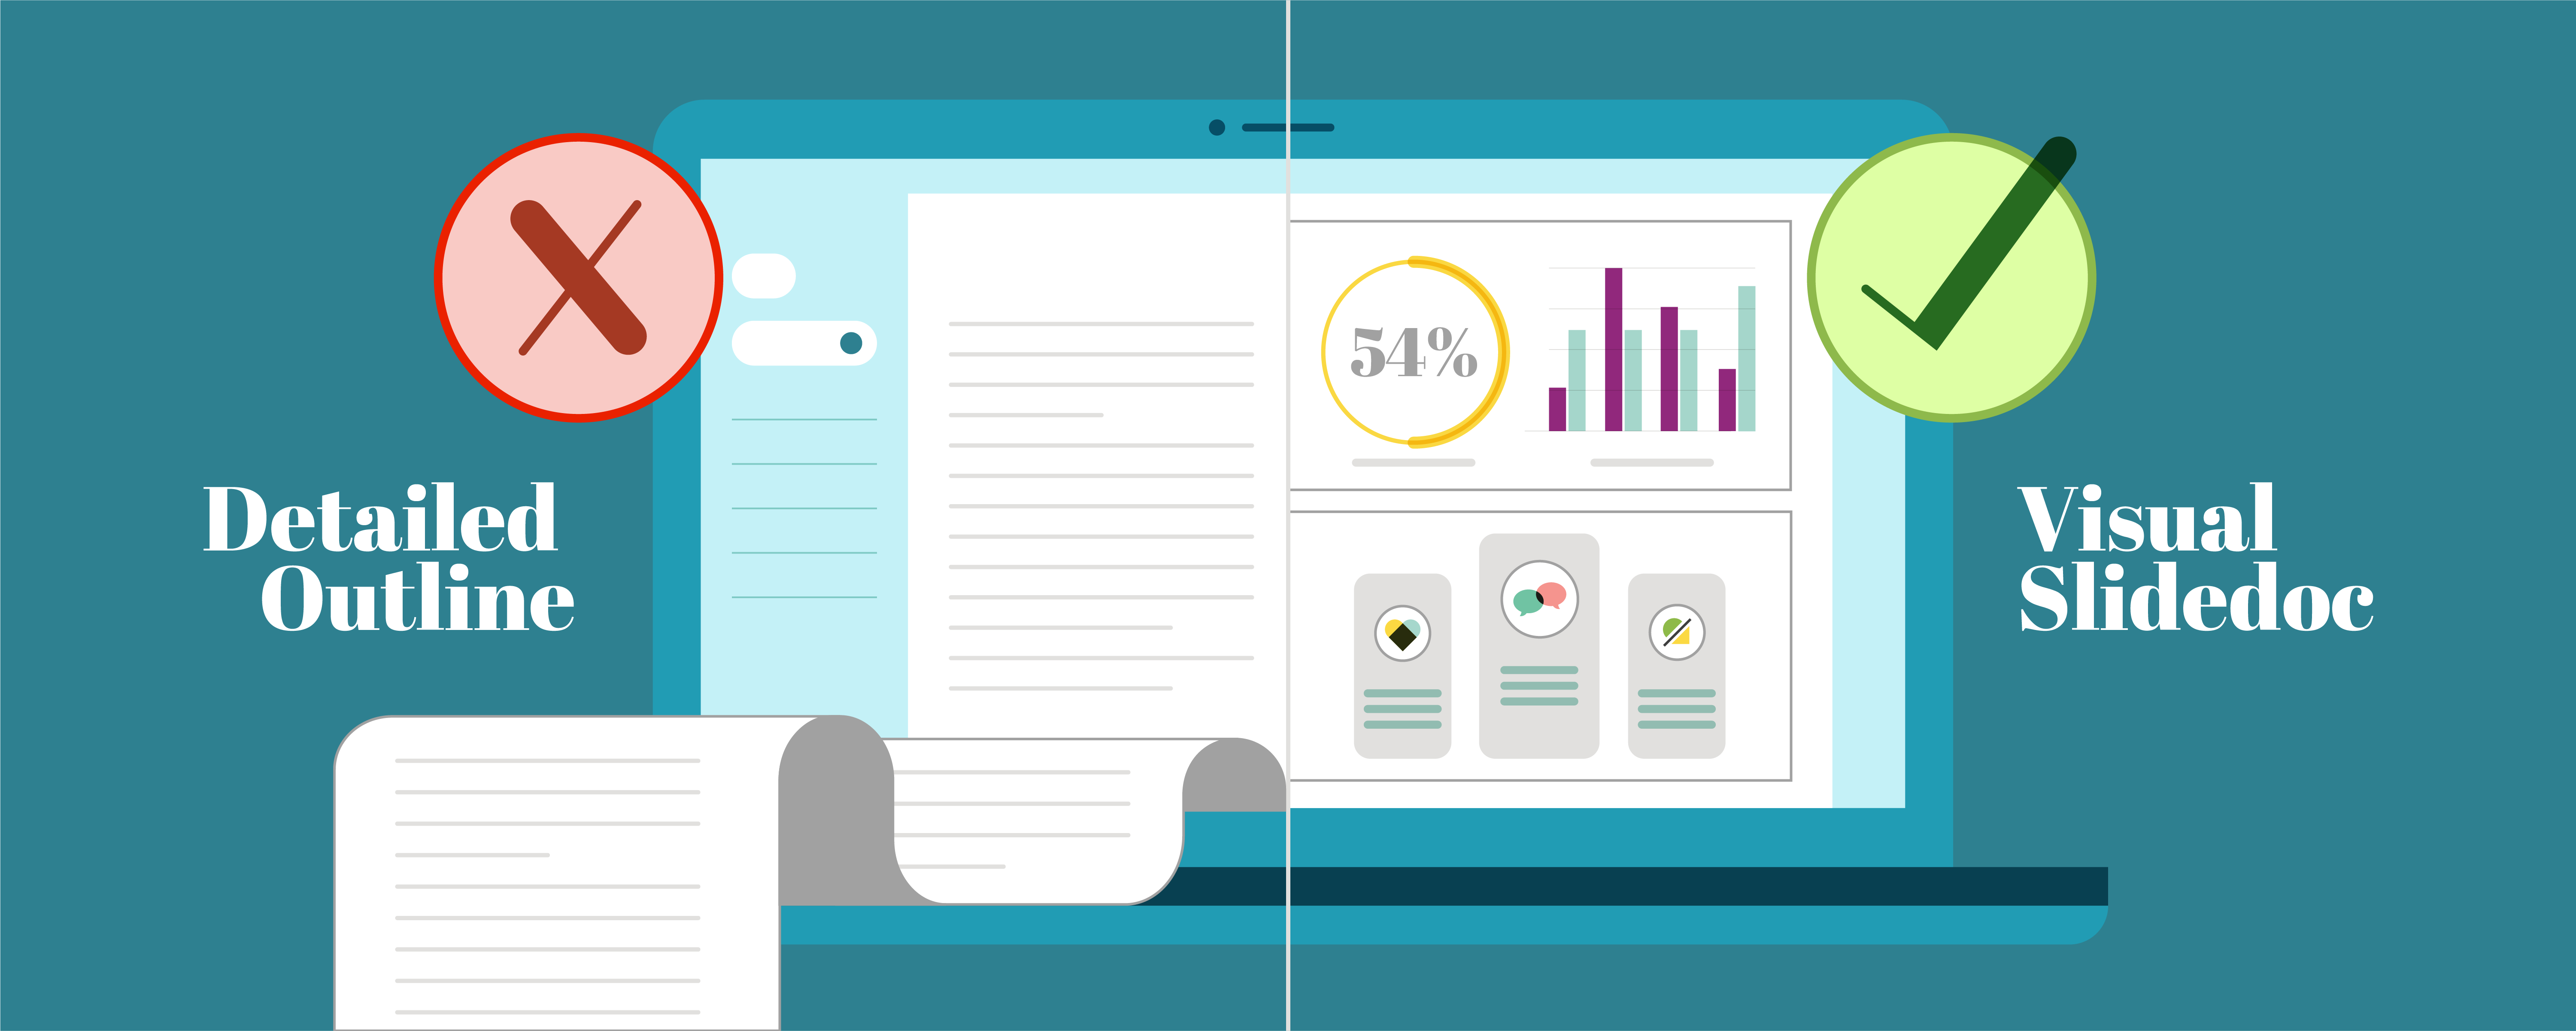 How to Create Visual Documents That Motivate Senior Leaders - Slidedocs 3